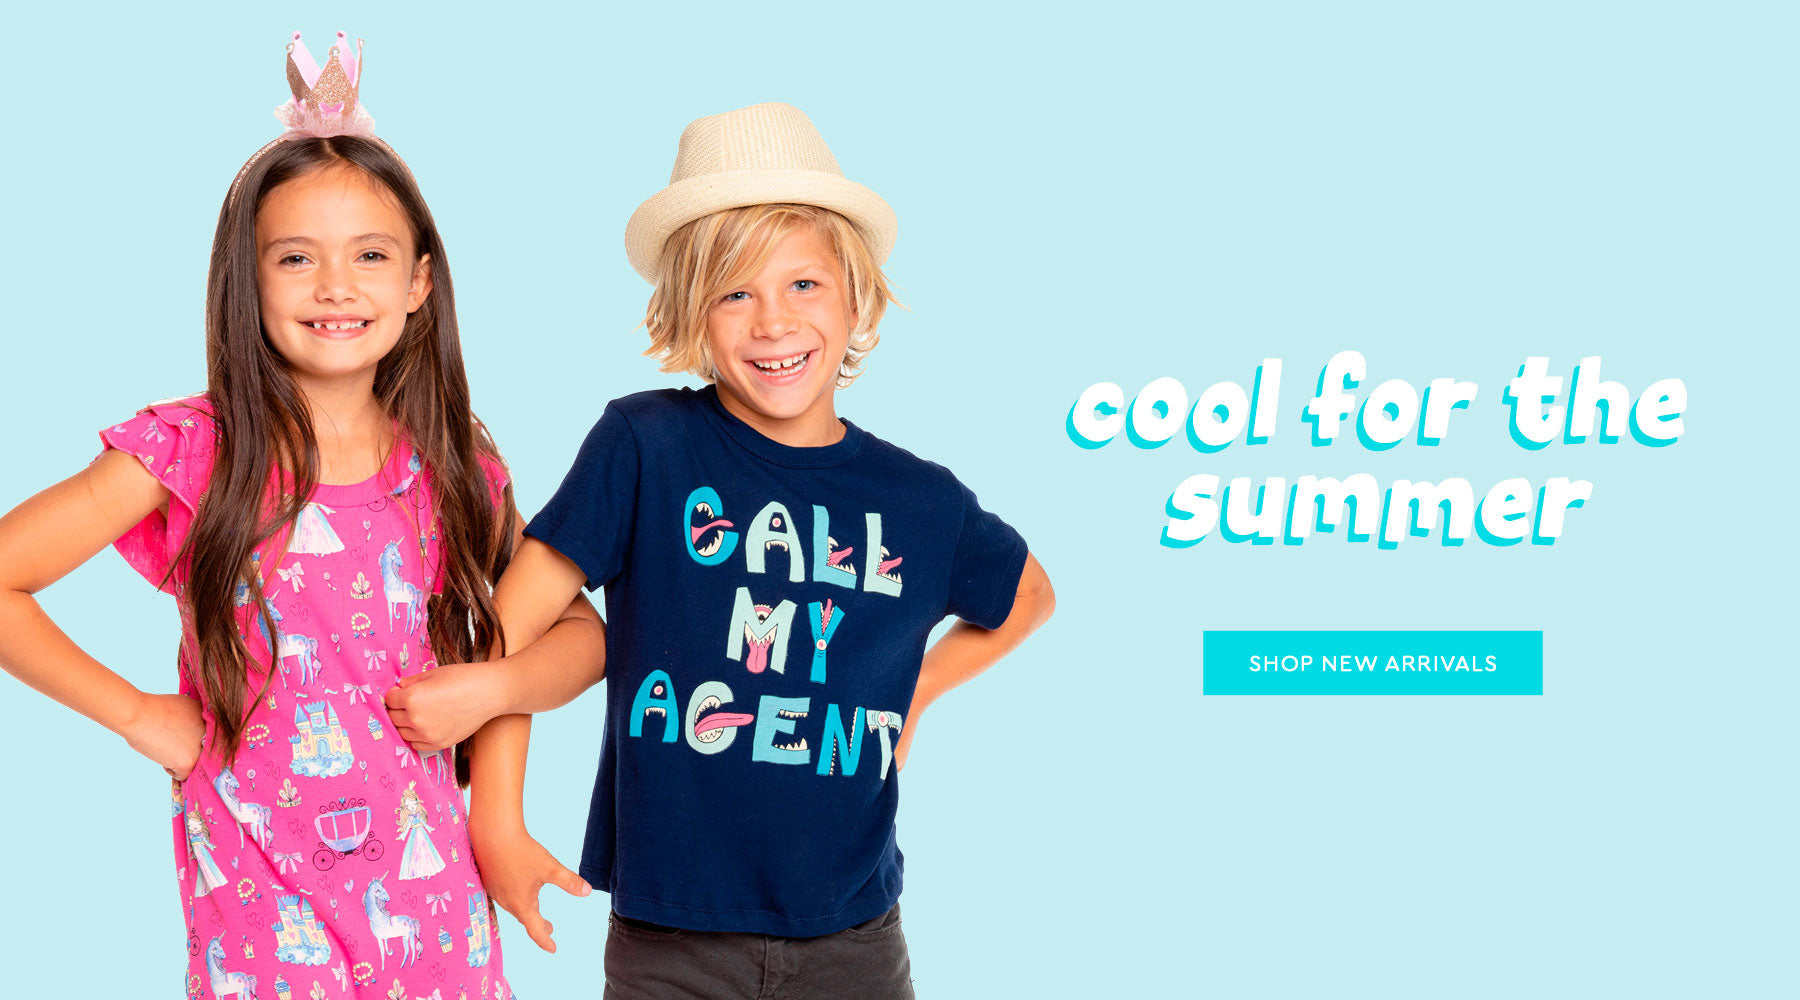 Peep 👀 new arrivals for kids: graphics, tees, tanks, loungewear, dresses & more in our signature, super-soft fabrics